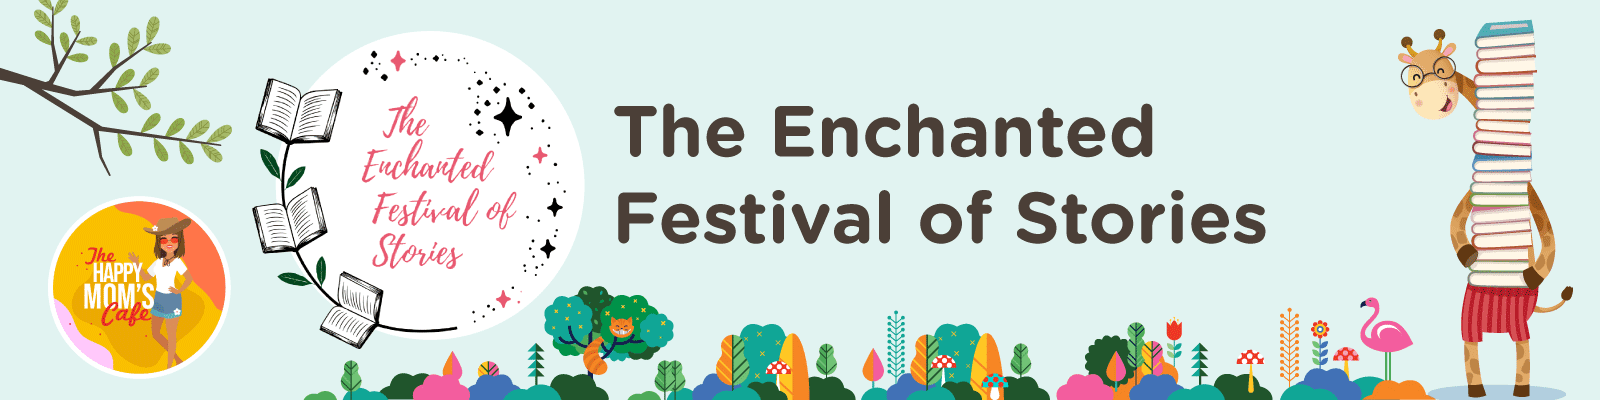 The Enchanted Festival of Stories